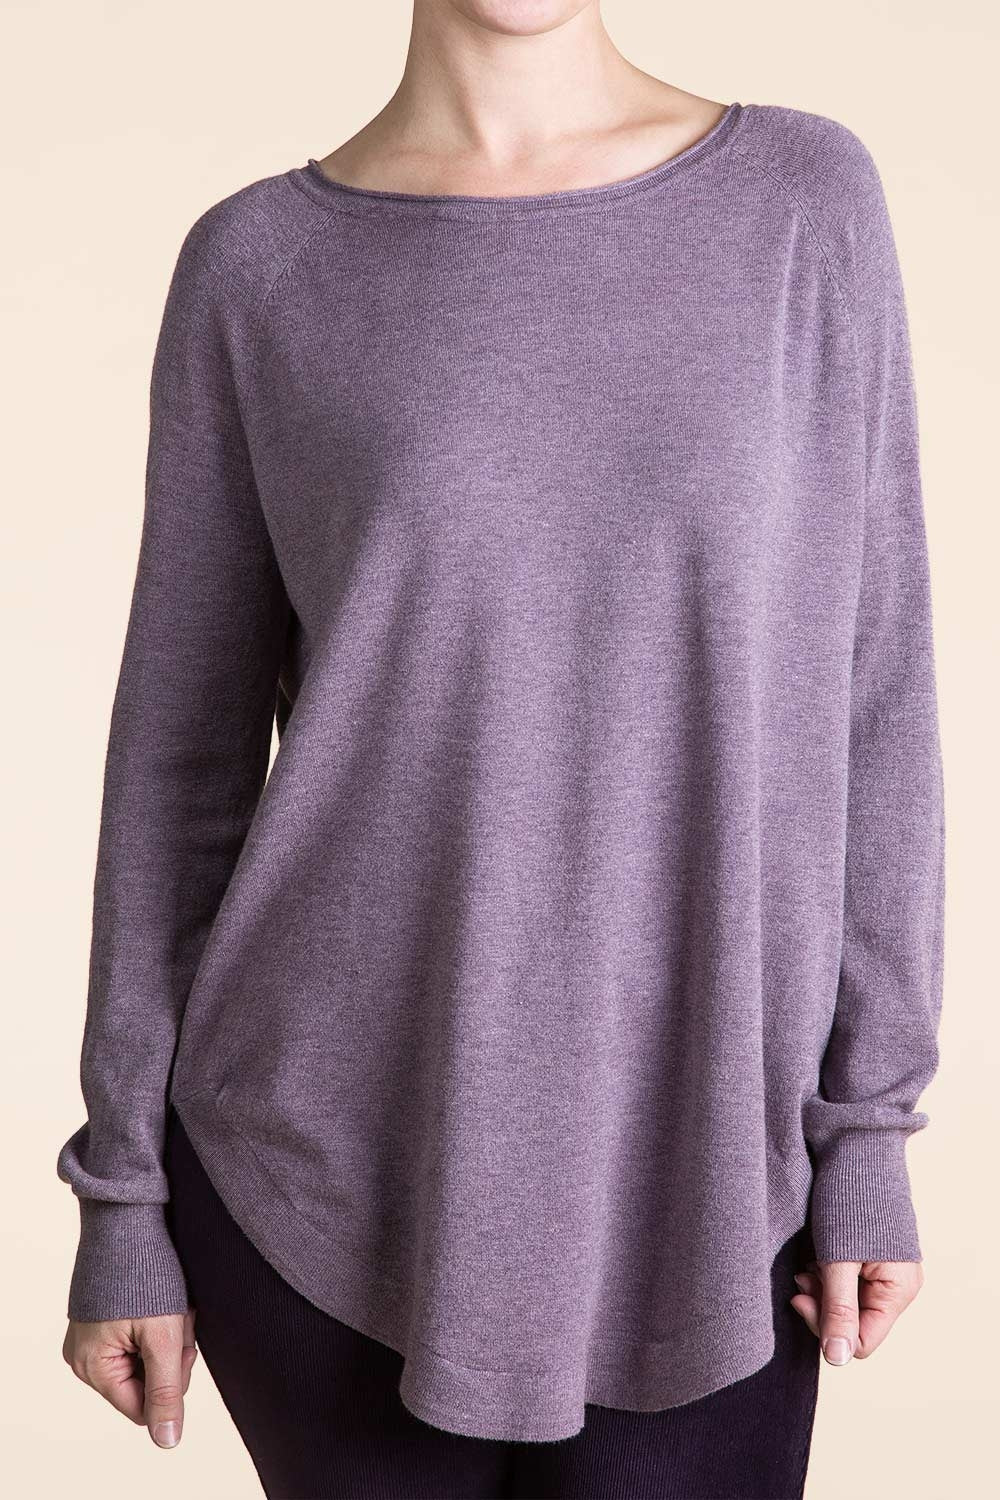 Type 2 Blended Threads Sweater